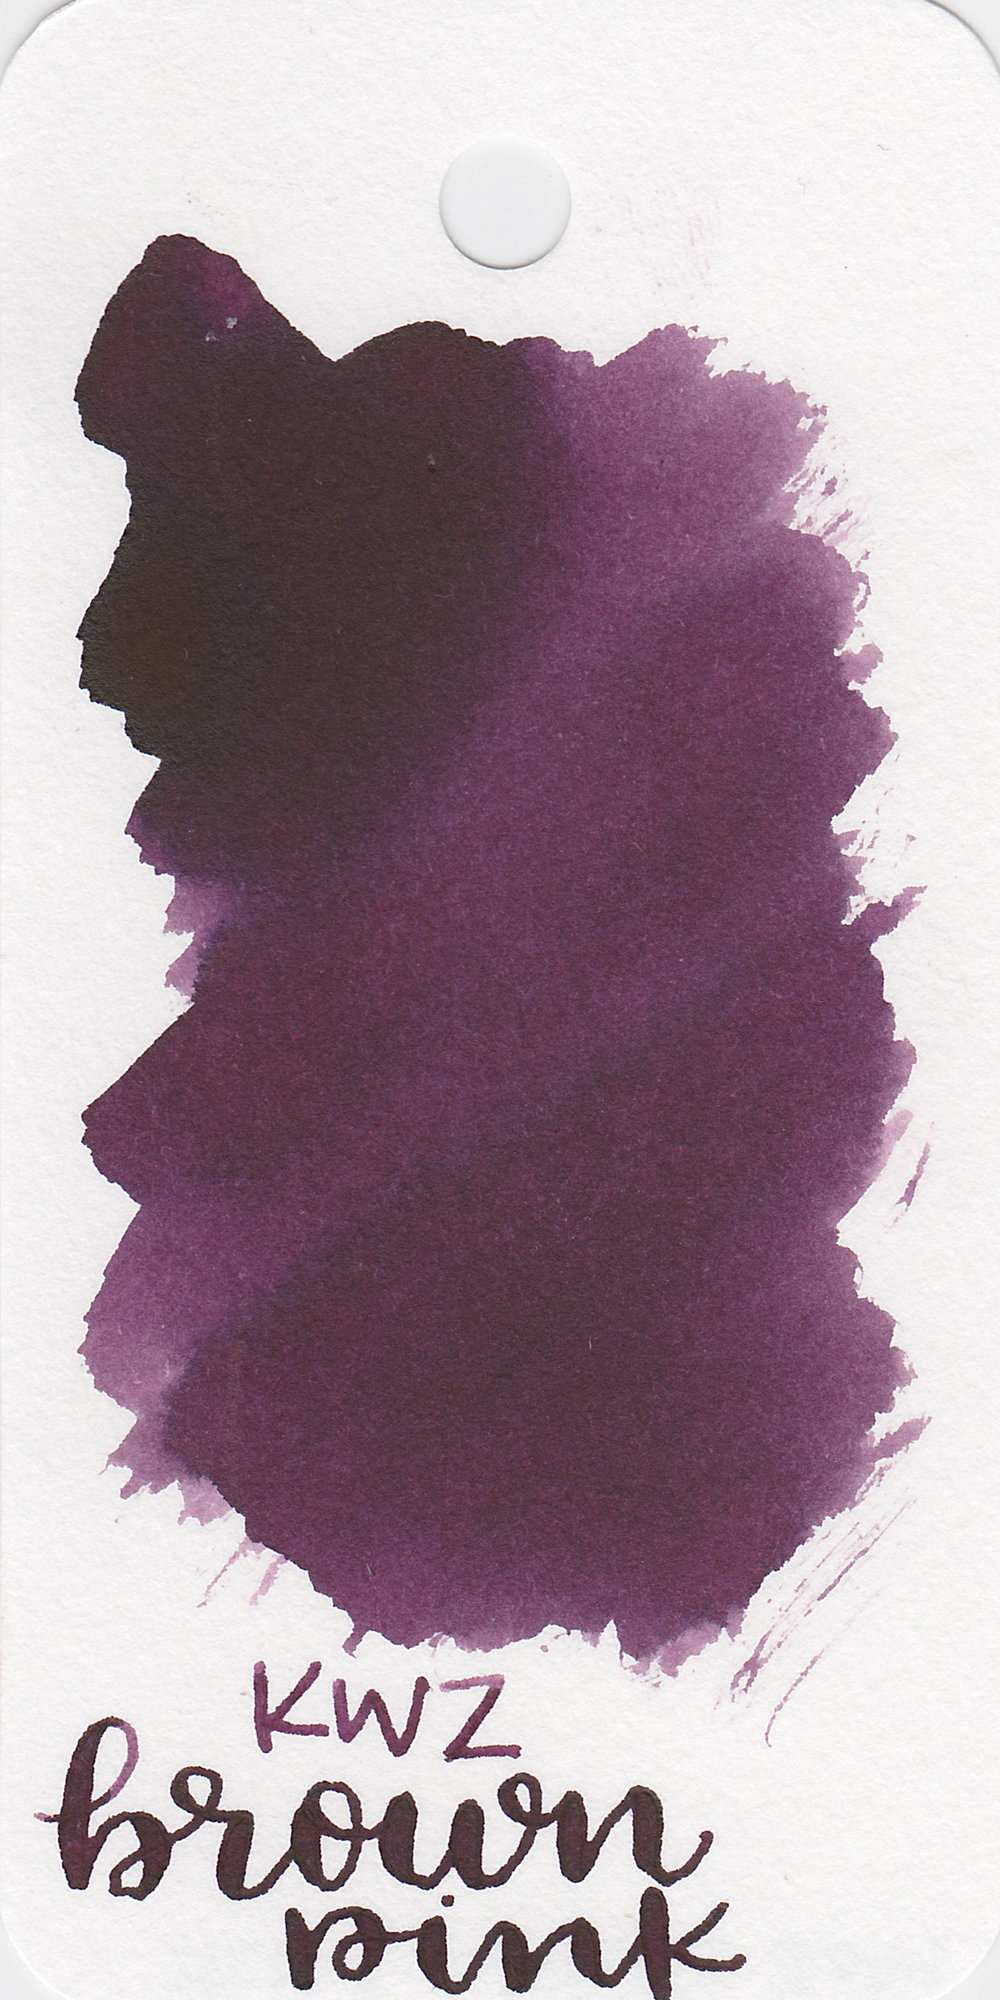 The color: - Brown Pink is a lovely purple. Based on the name I was expecting more of a brown, but it's a pretty purple.